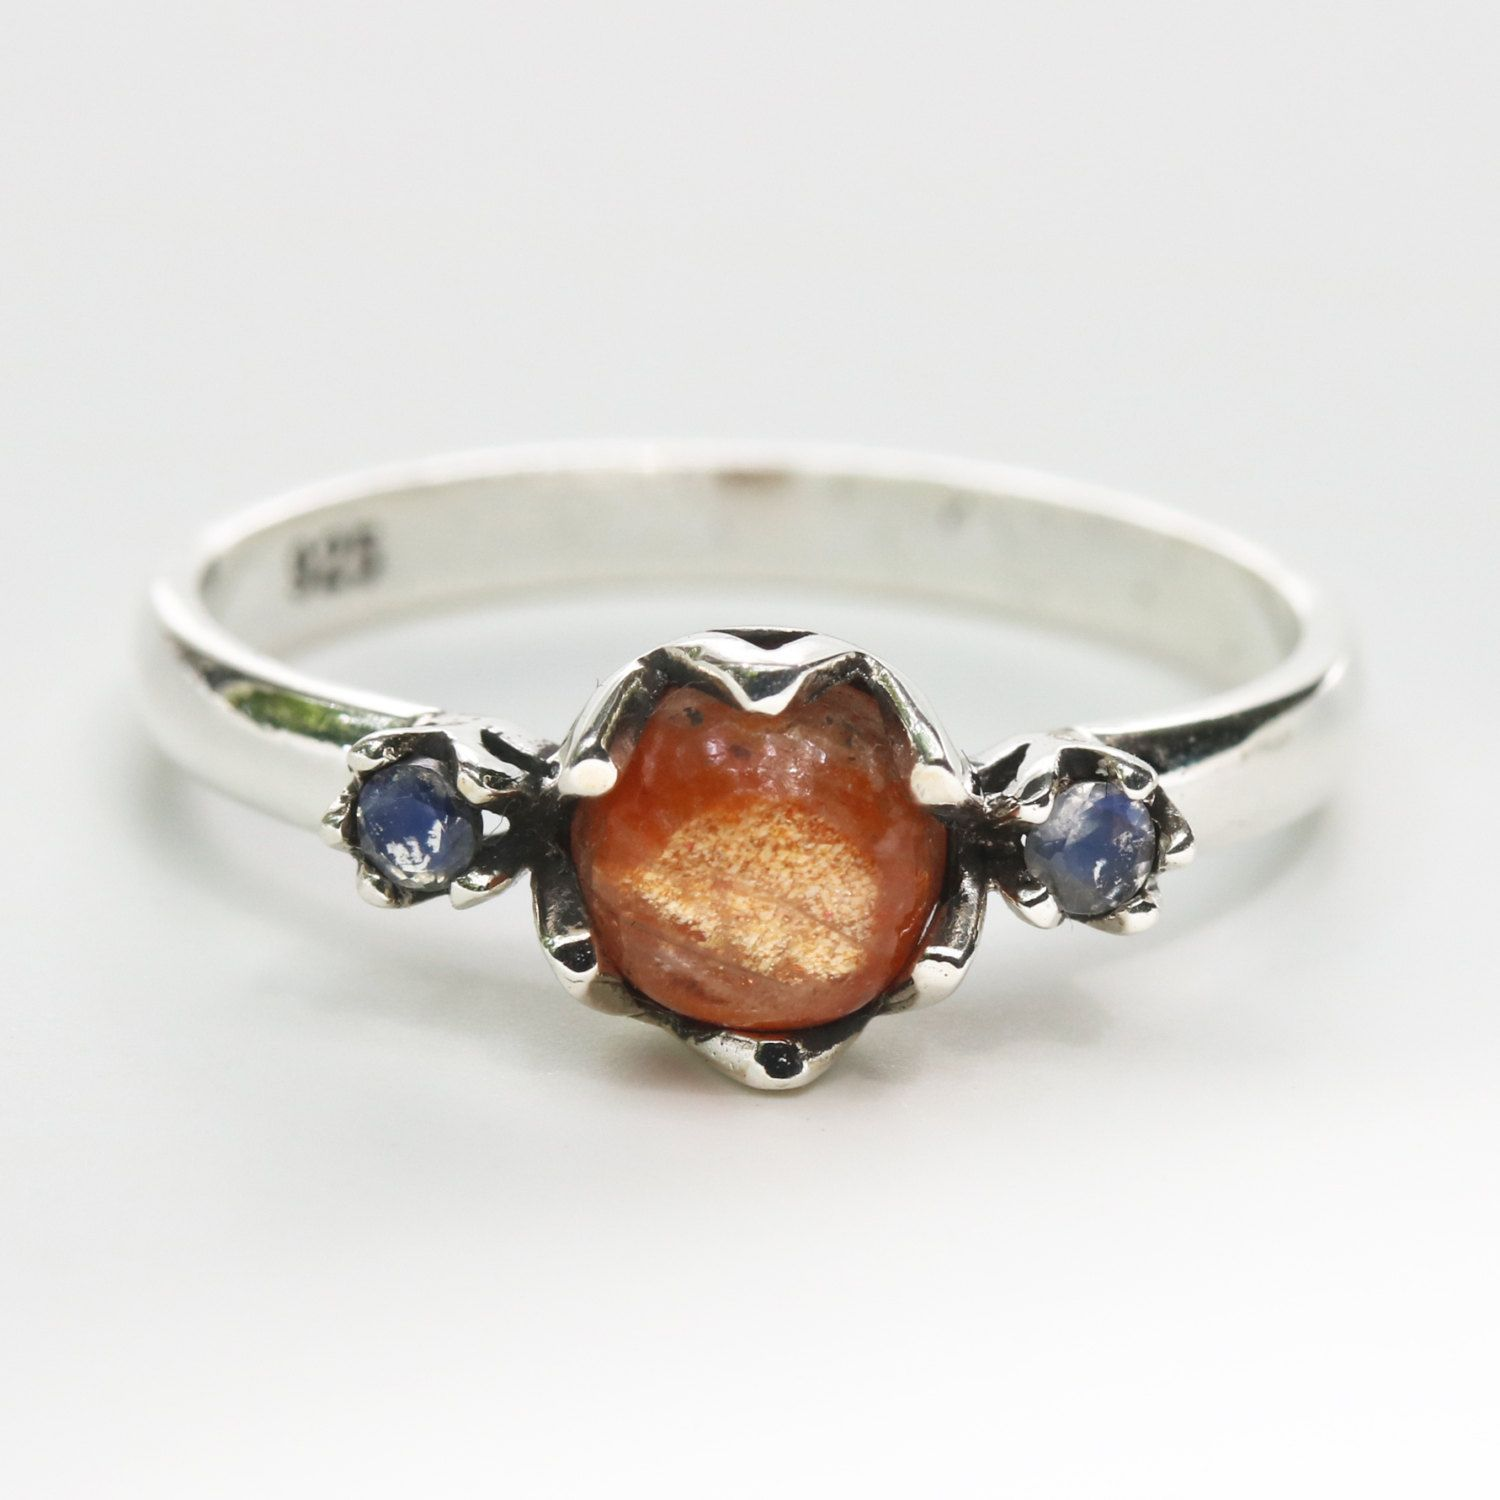 stone image elements collections sun ring rings sunstone diamond oregon engagement boutique product